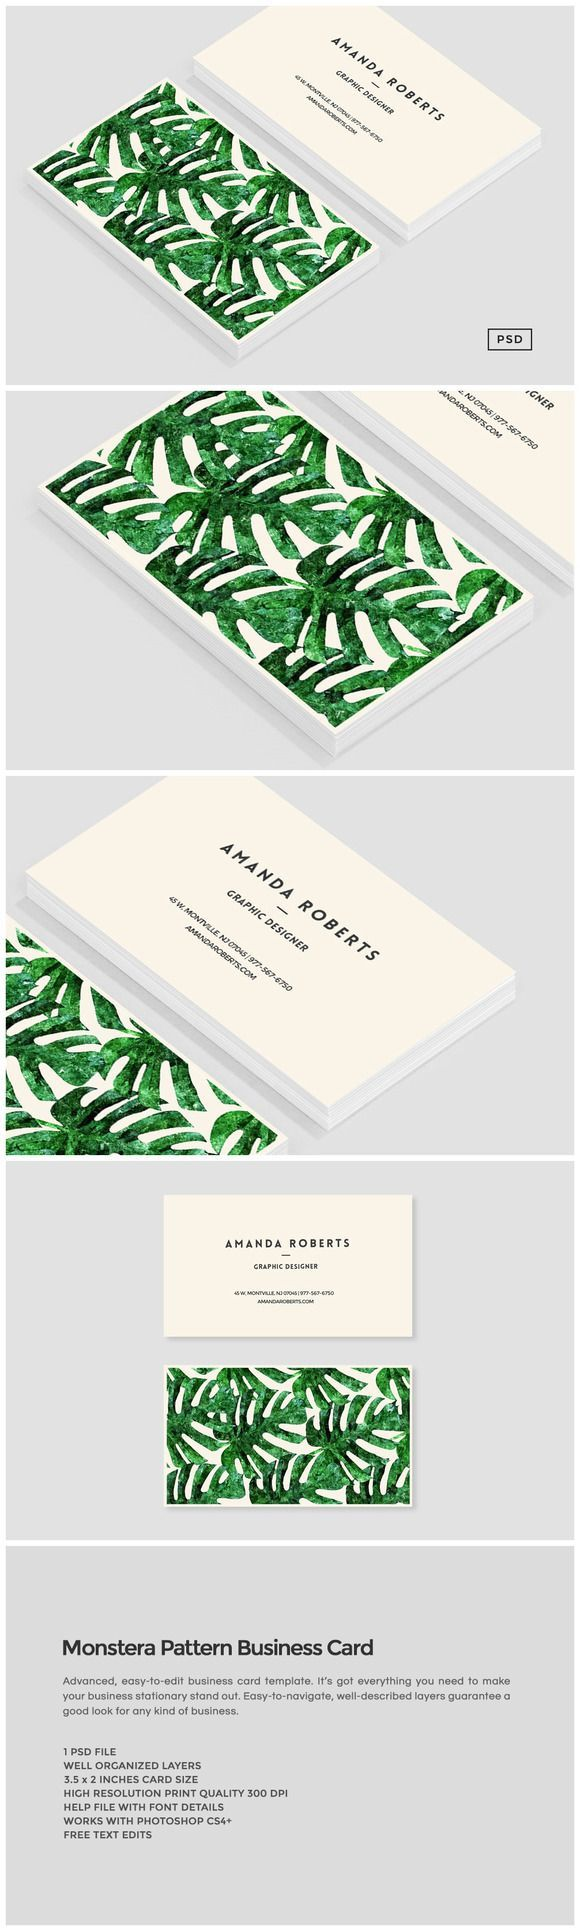 Monstera Pattern Business Card Introducing our latest Monstera Pattern business…